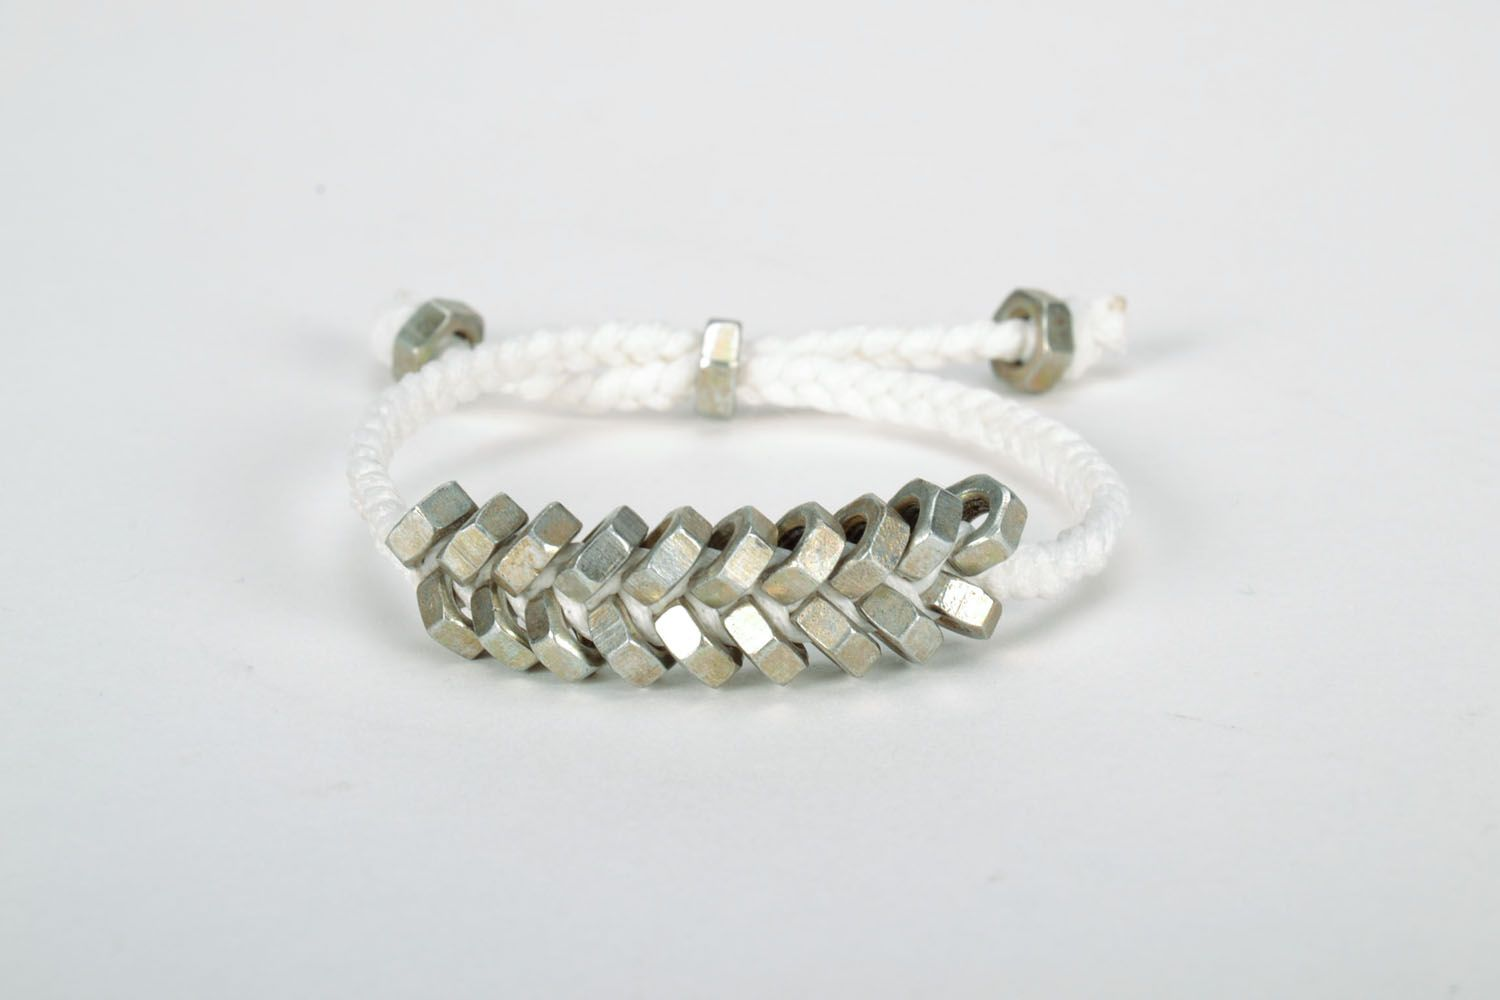 Homemade woven bracelet with metal nuts photo 2